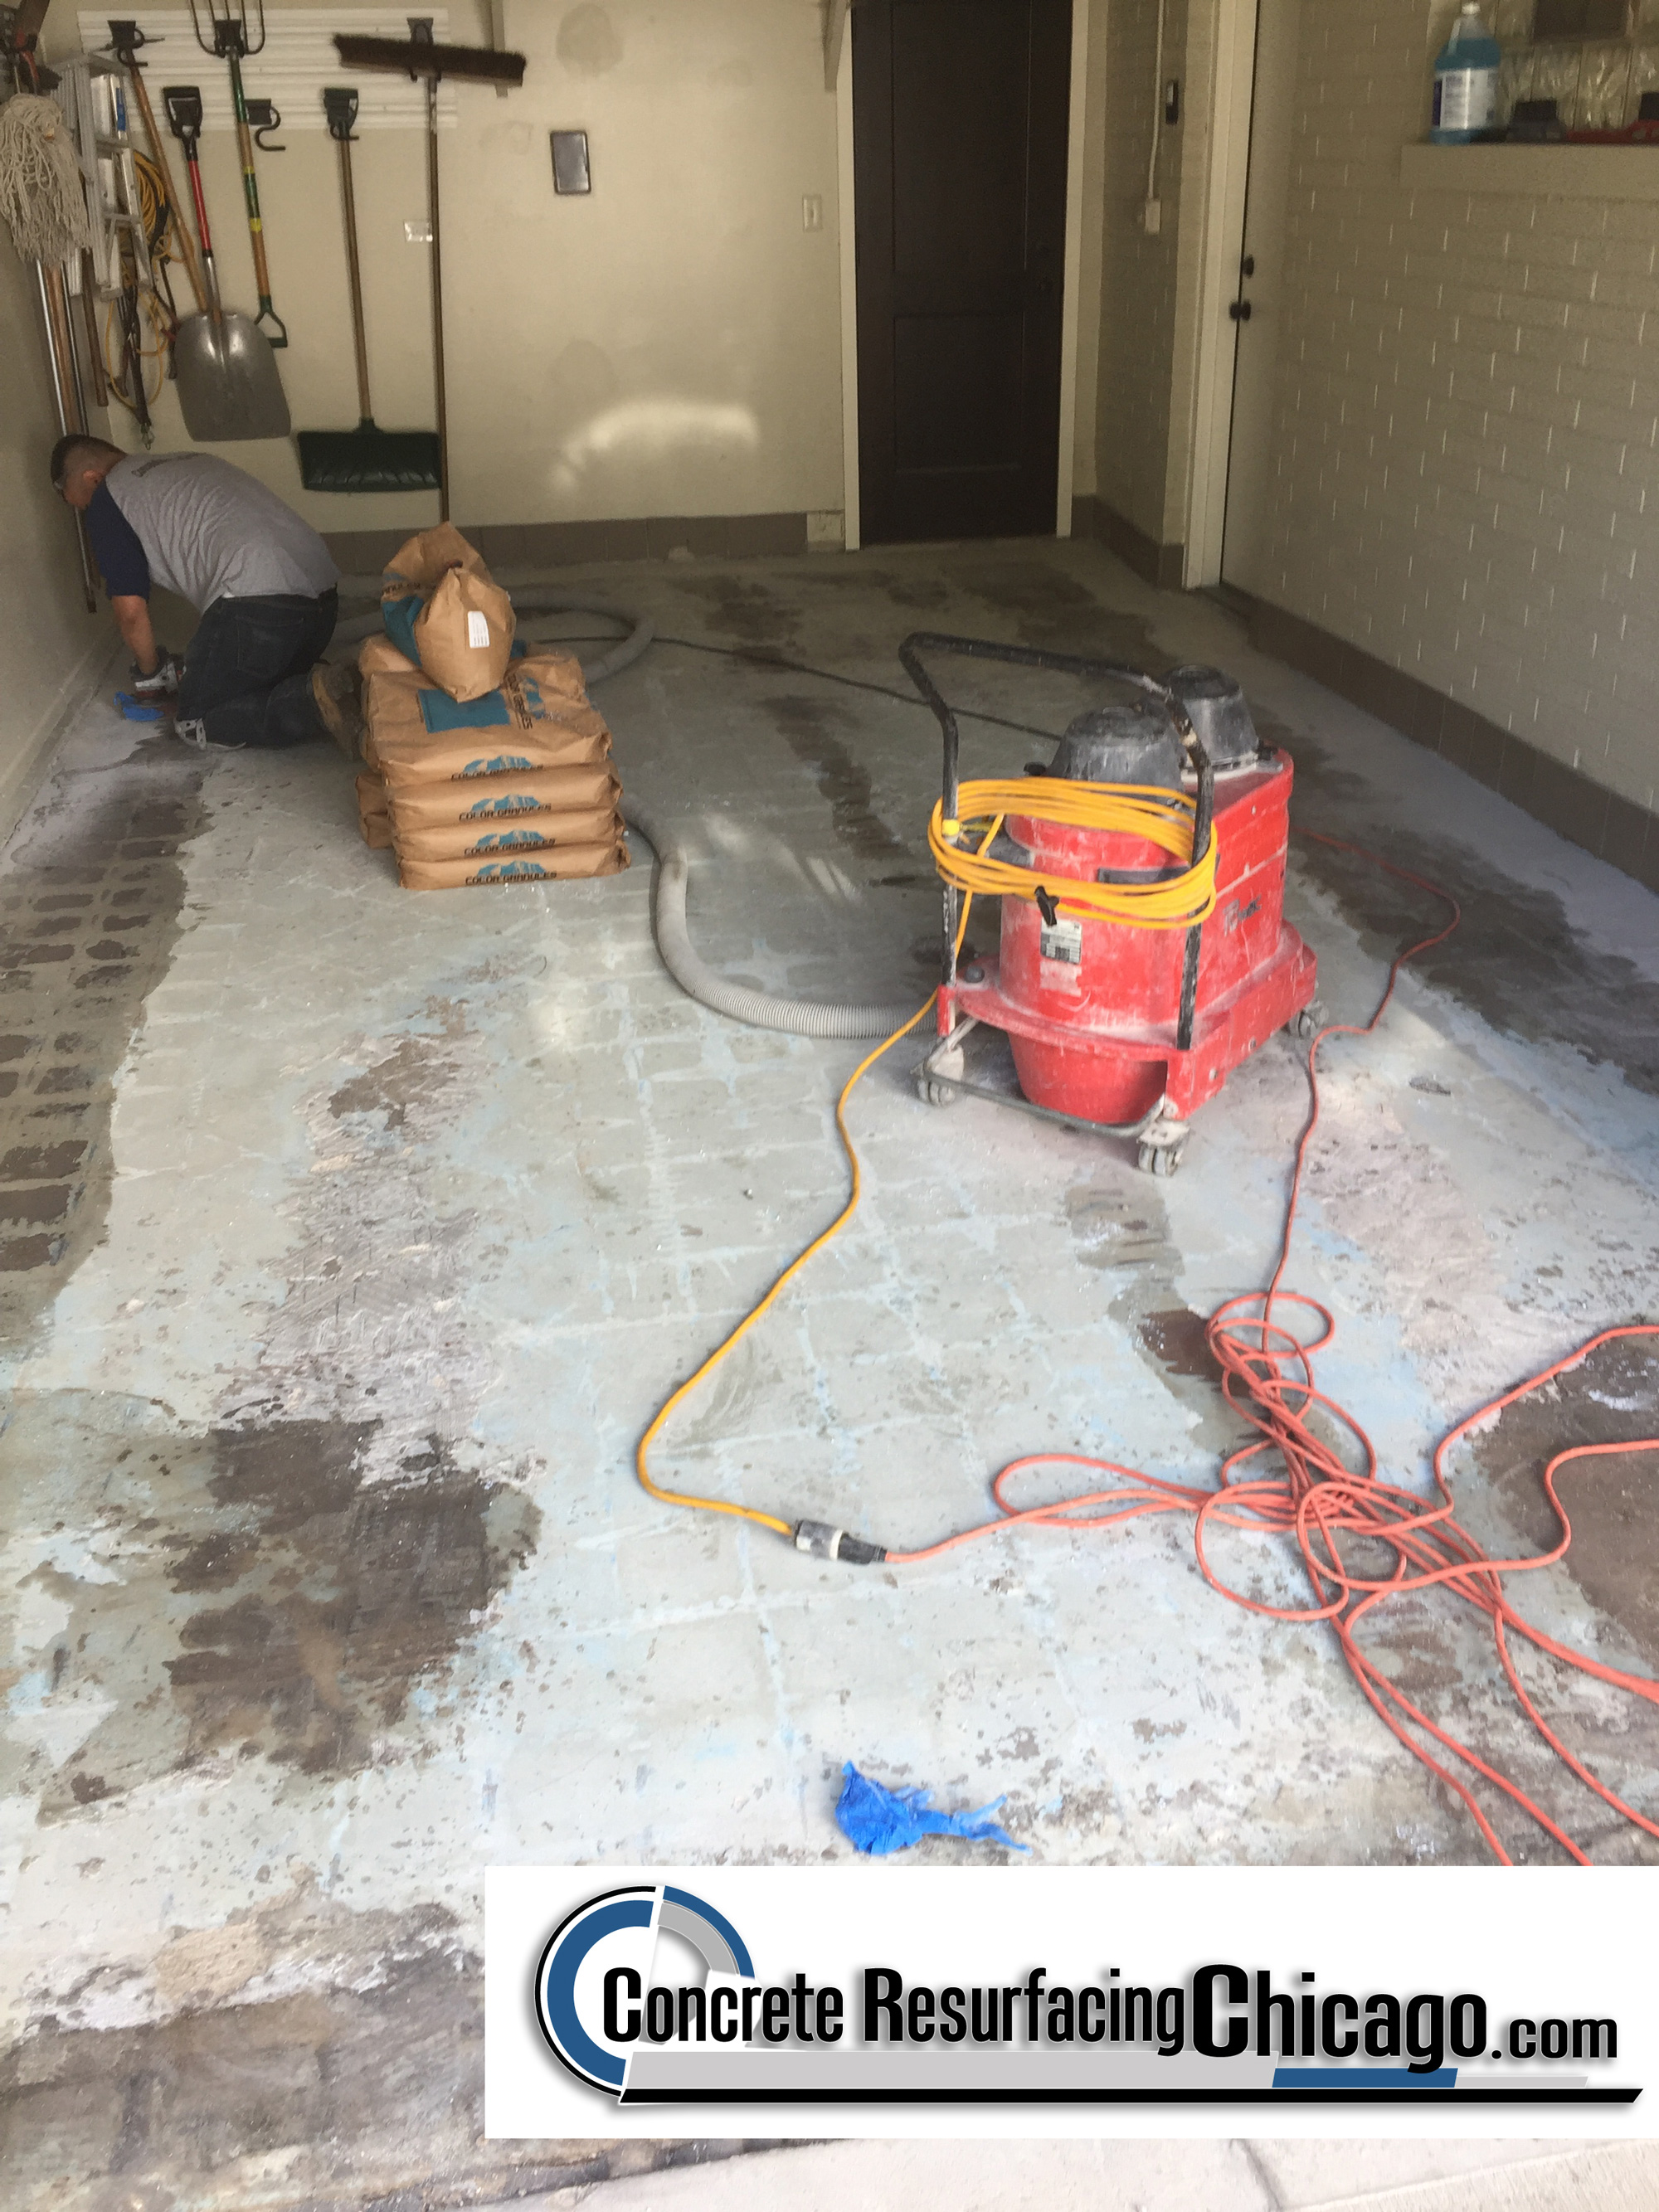 view floor special pitted resurfacing repair garage a make all look resurfacers concrete new masonry handyman like will fix pitflo family